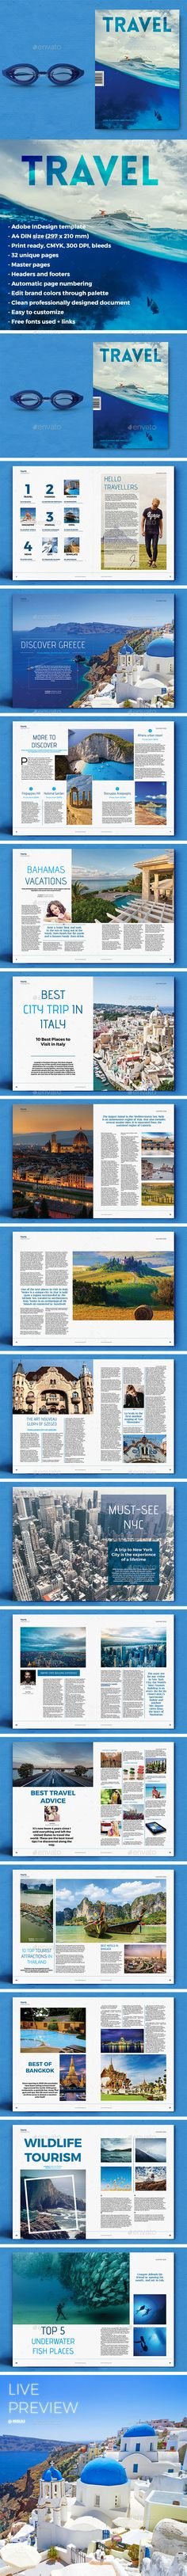 Travel Magazine 32 Pages Template InDesign INDD - Fiverr - an online platform for freelancer. Fiverr is also a great place for you to outsource tasks such as writing making a vide creating a logo. - Travel Magazine 32 Pages Template InDesign INDD Magazine Page Layouts, Mise En Page Magazine, Magazine Layout Design, Page Layout Design, Graphisches Design, Book Layout, Editorial Layout, Editorial Design, Magazine Design Inspiration